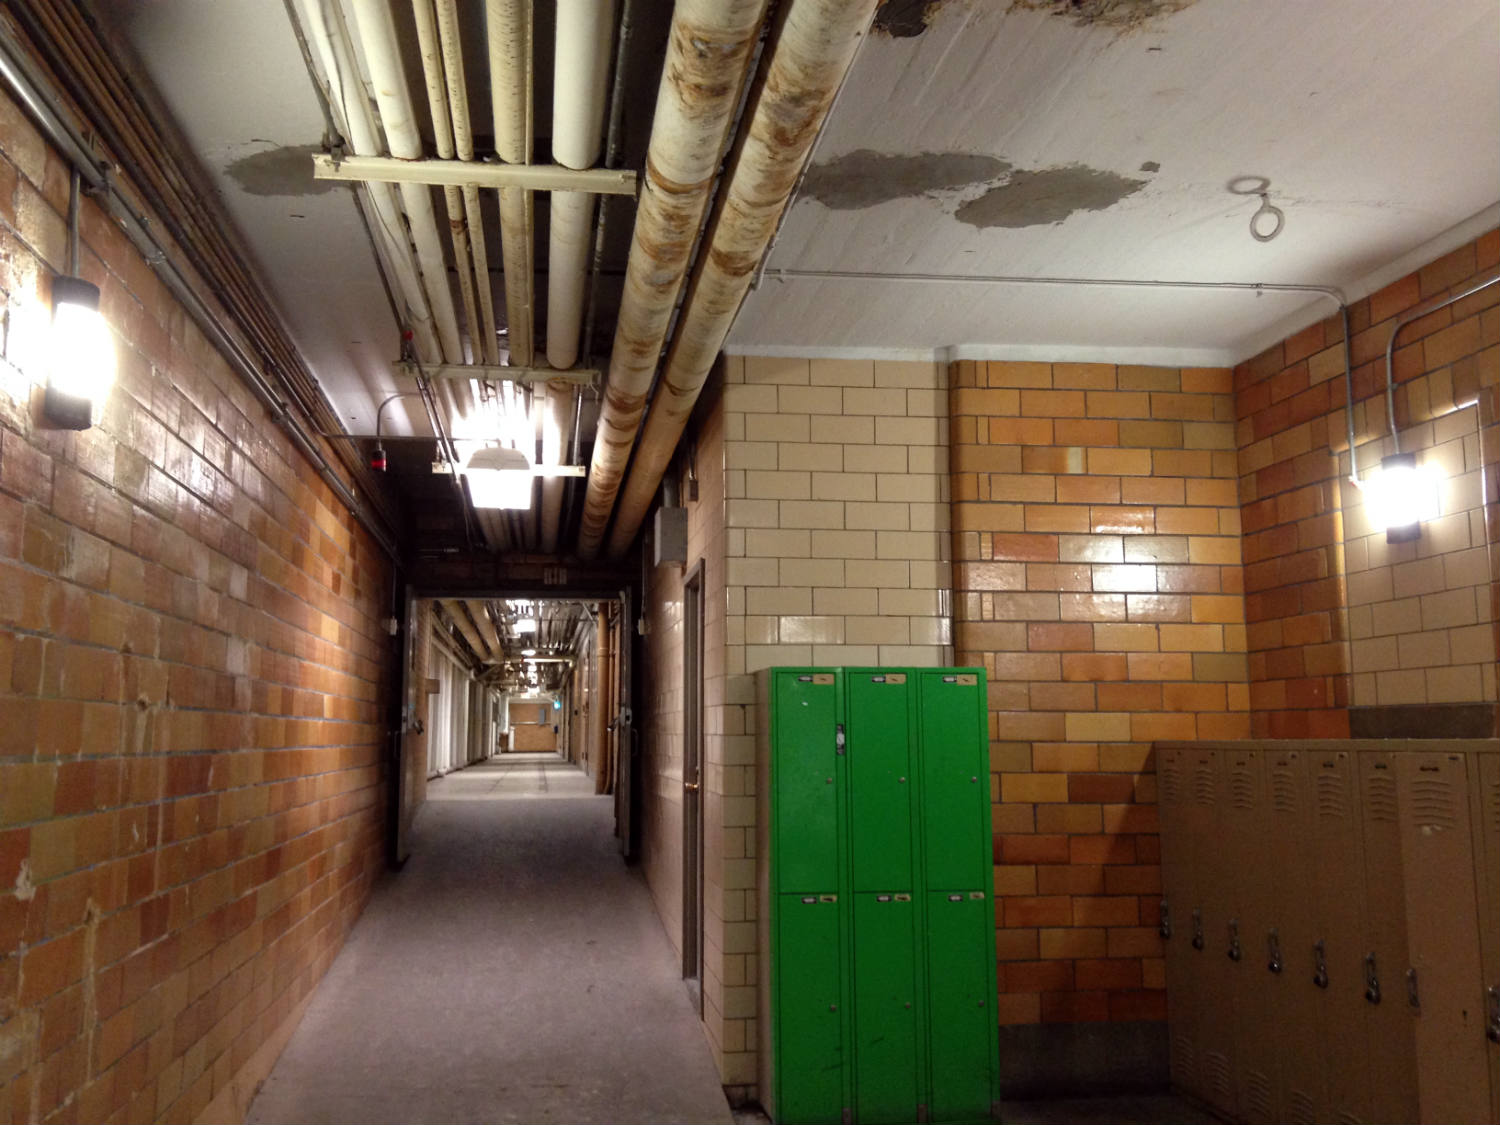 Tunnel System pipes at the University of Rochester